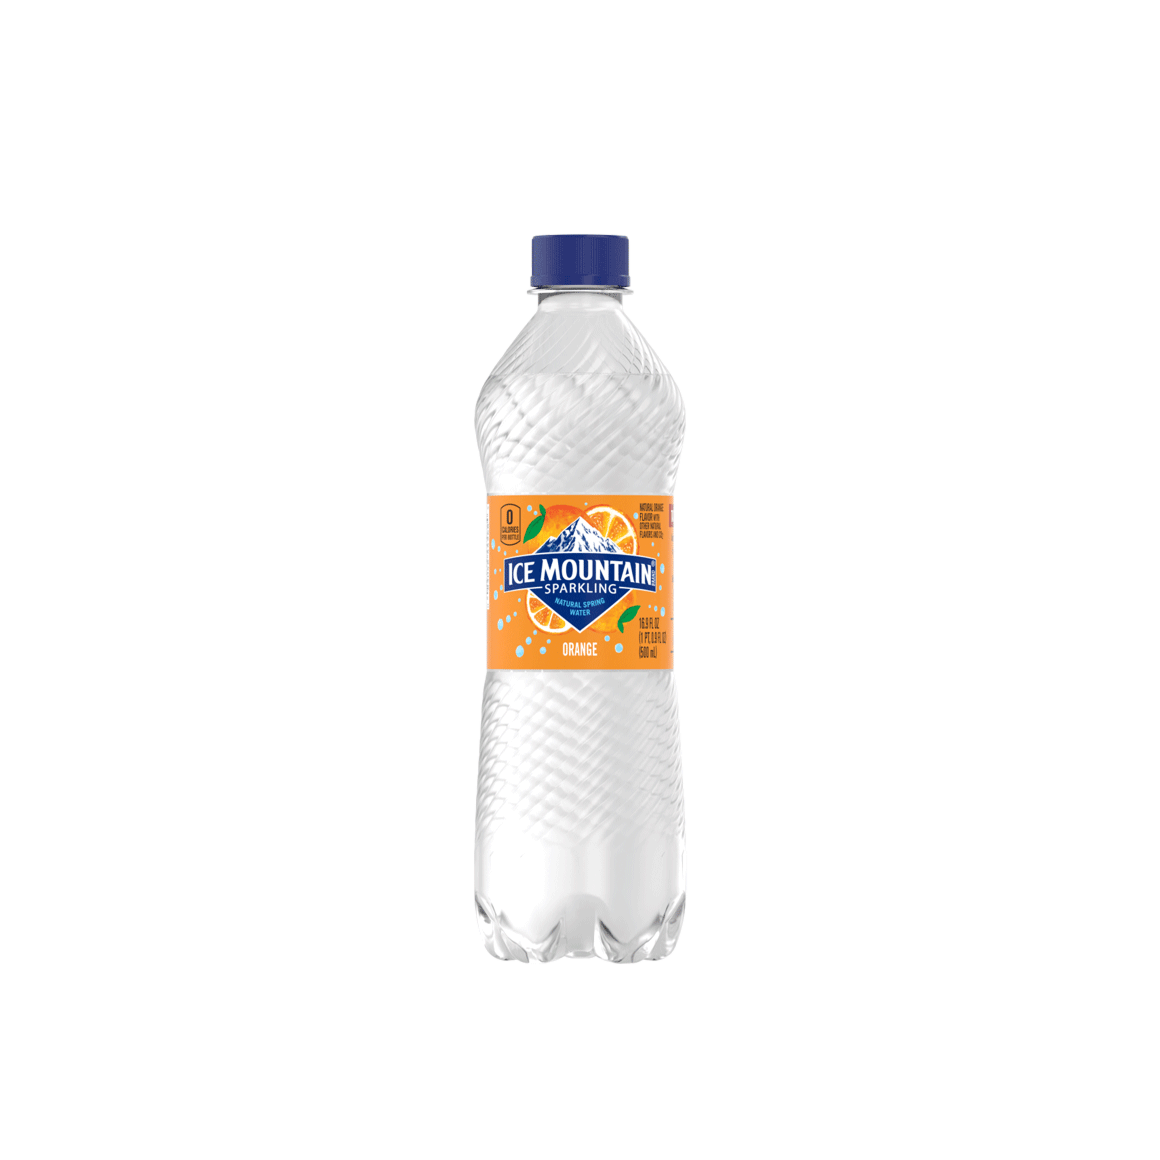 Ice Mountain® Orange Sparkling Water Image2